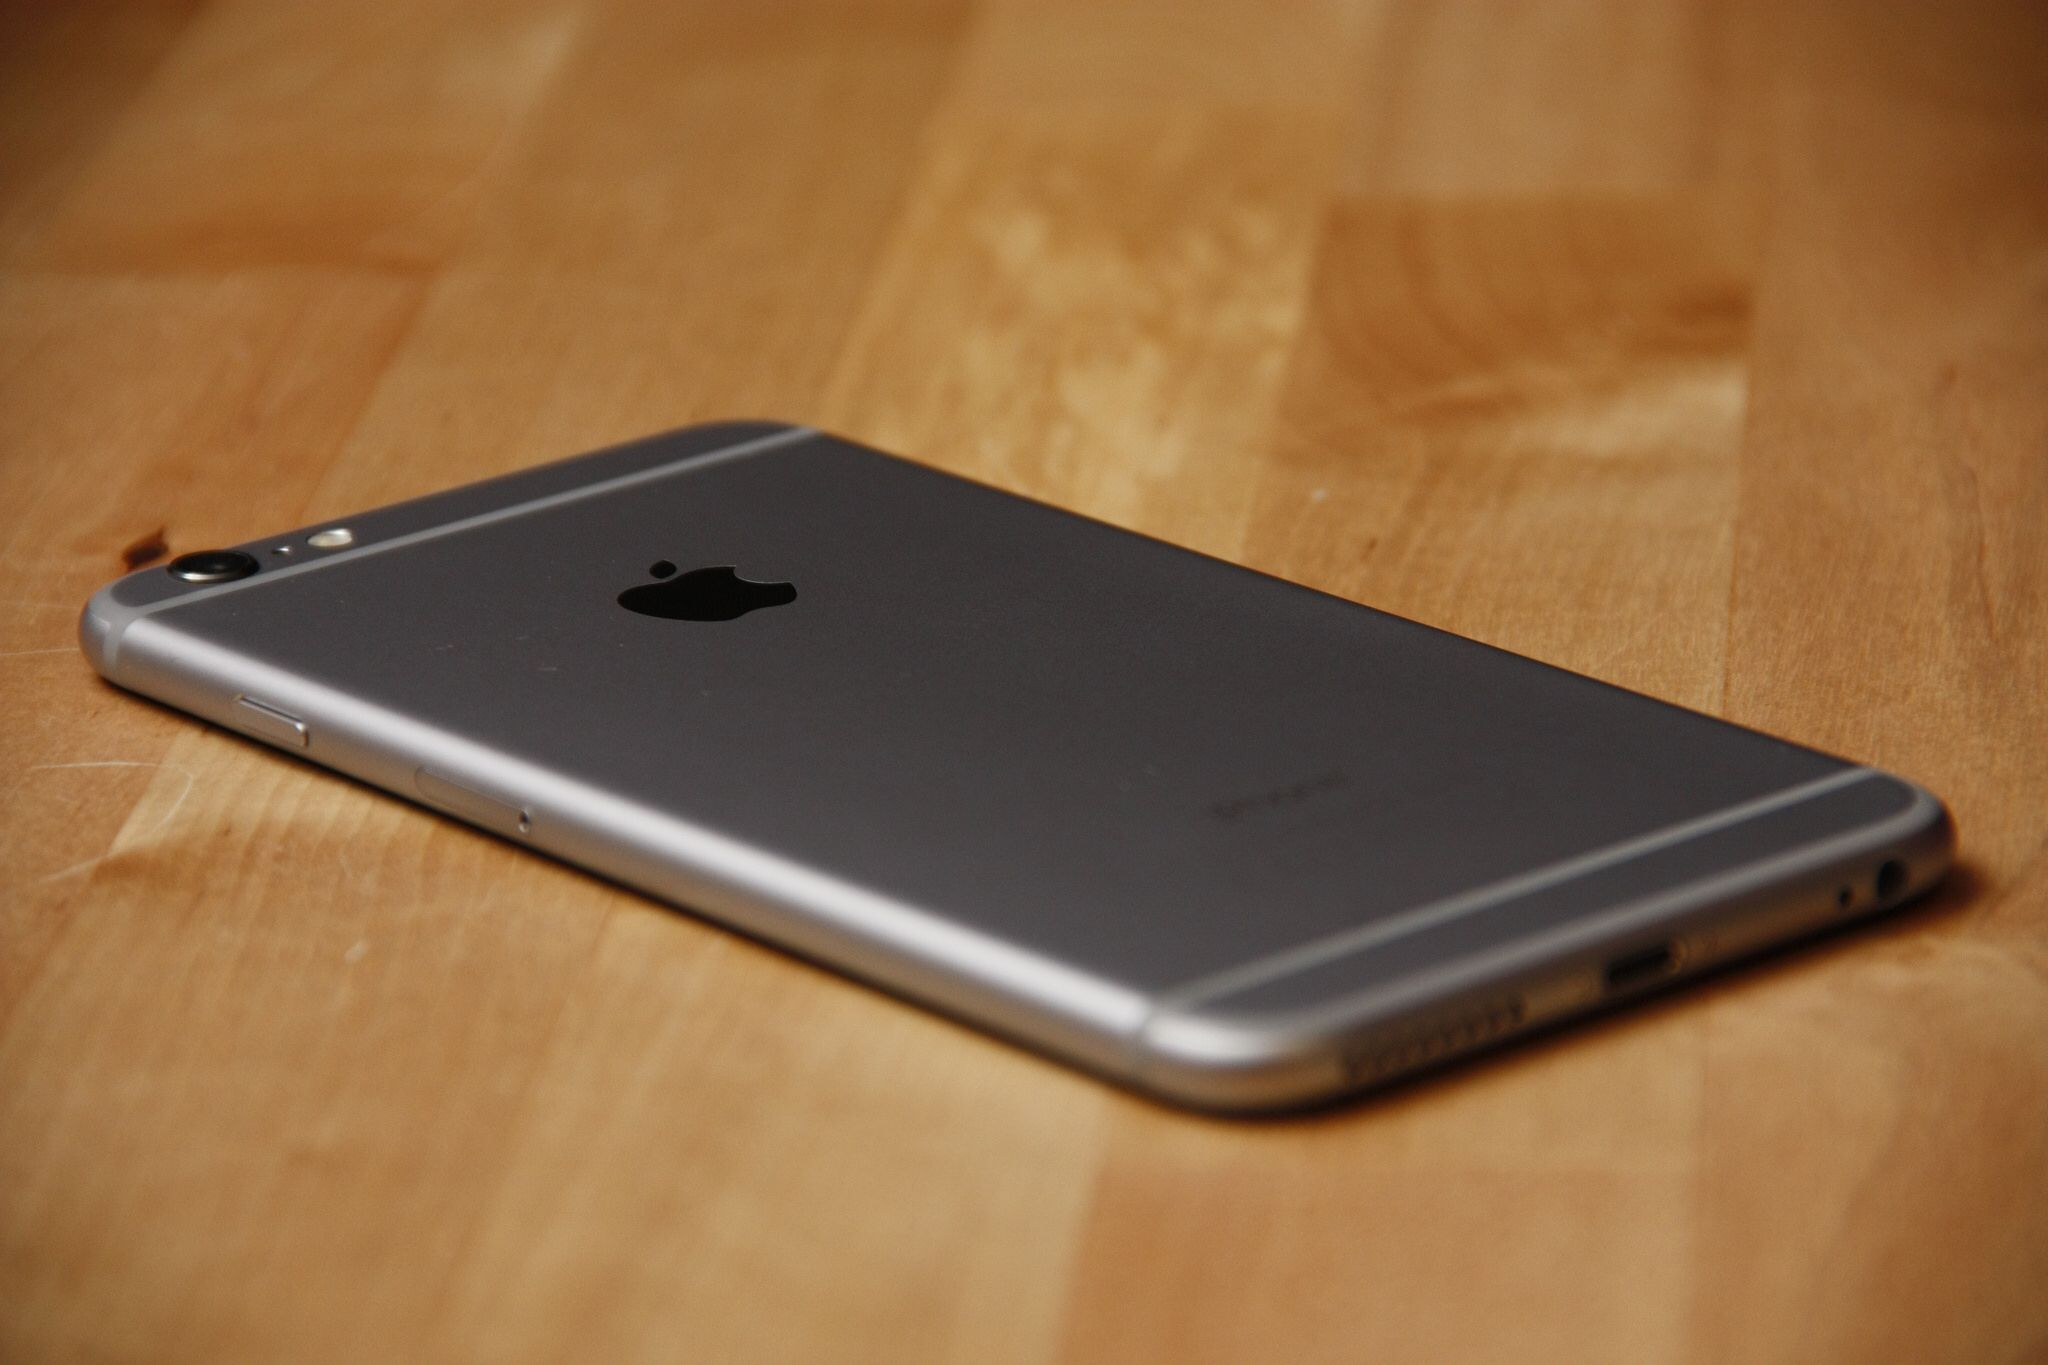 iPhone 6 Plus Space Grey (With images) Iphone, Iphone 6s